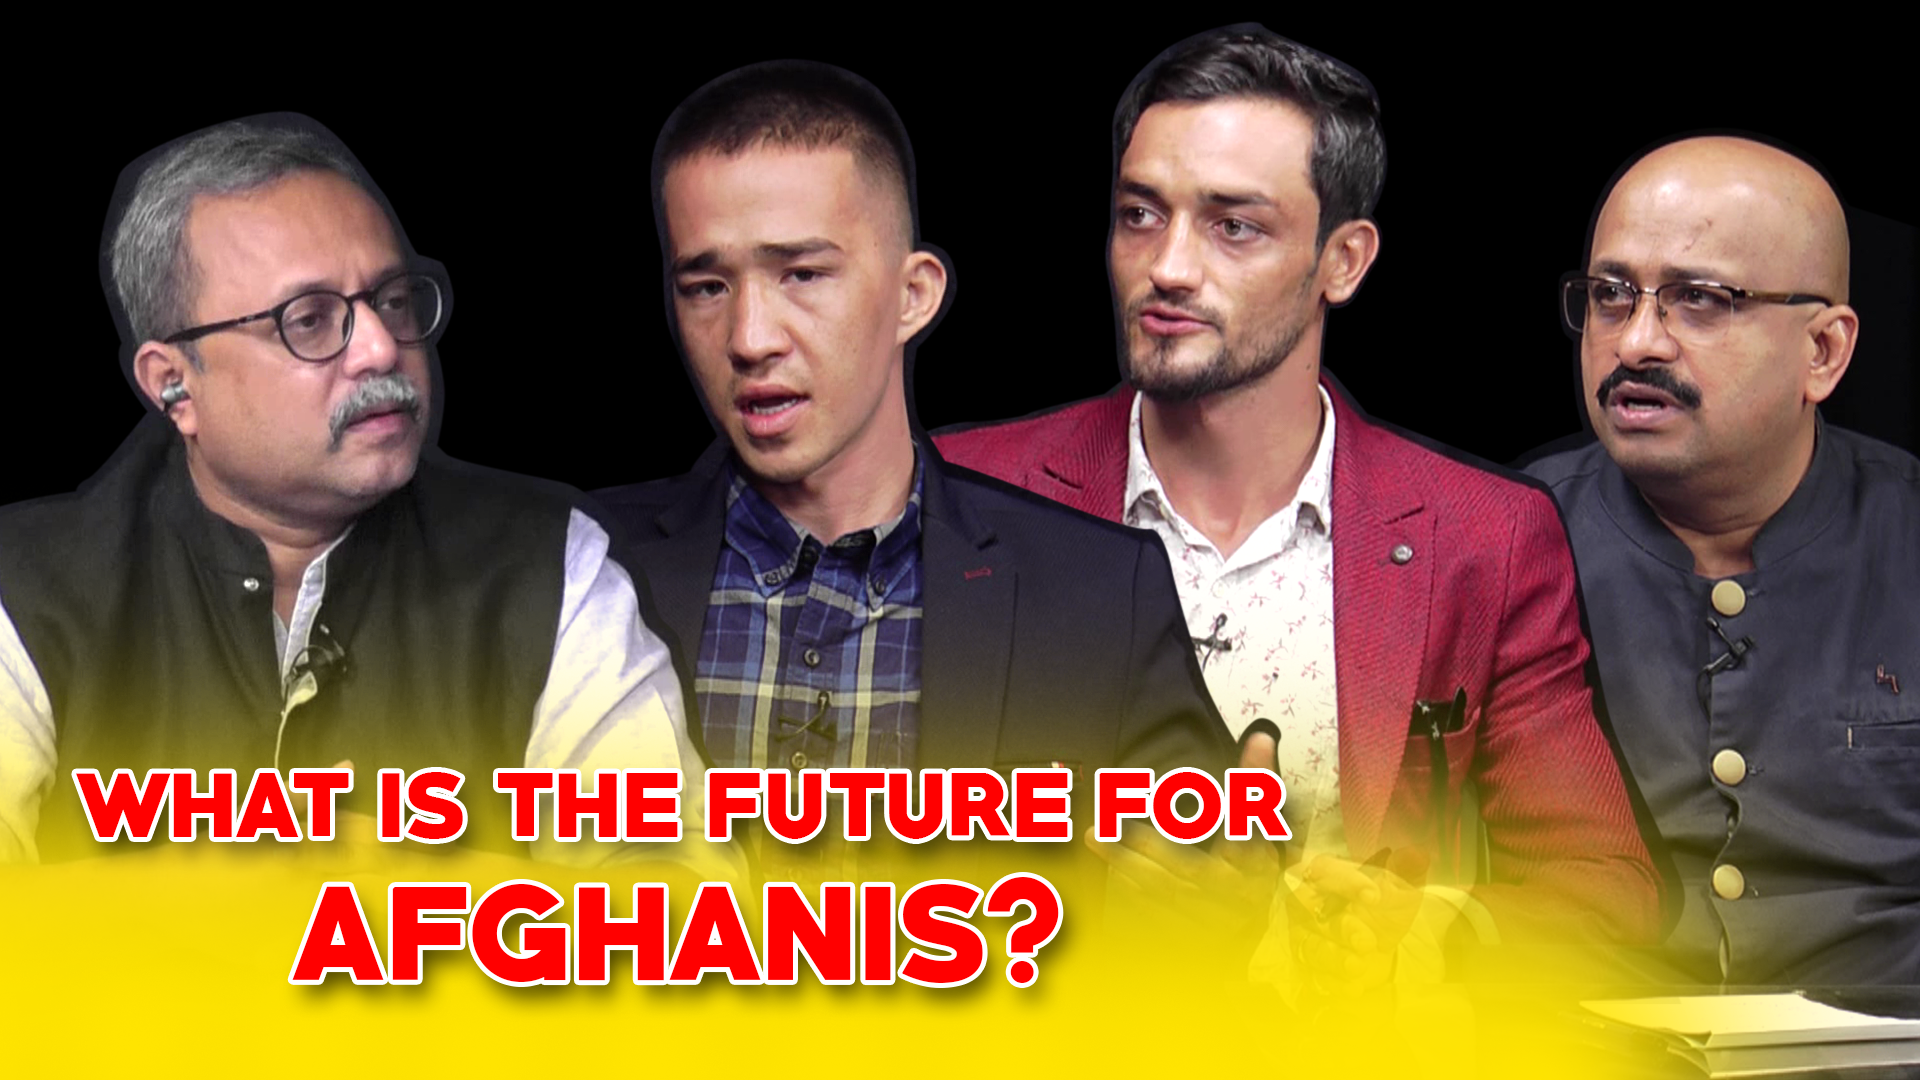 STORY BEHIND THE STORY : WHAT IS THE FUTURE FOR AFGHANIS?